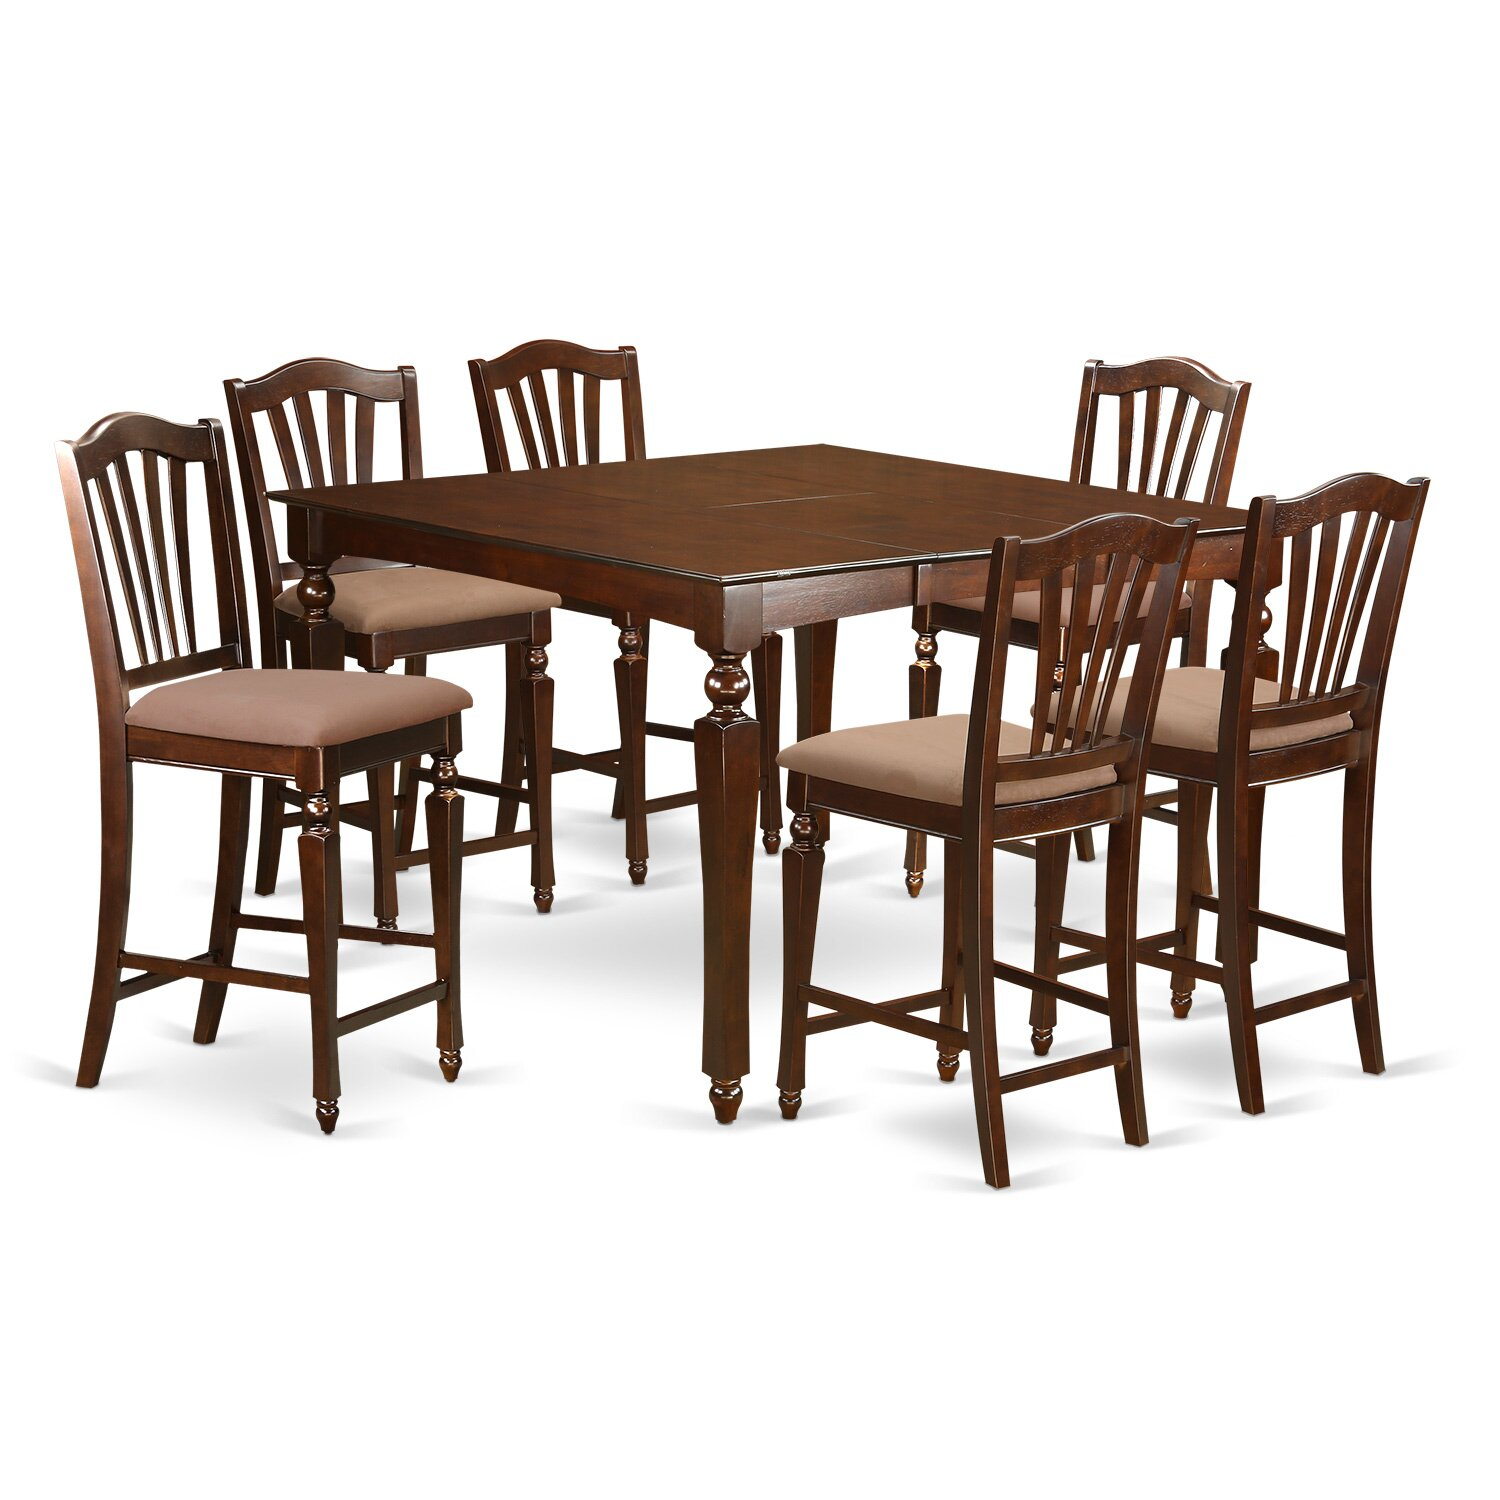 chelsea 5 piece dining set cherry finish images